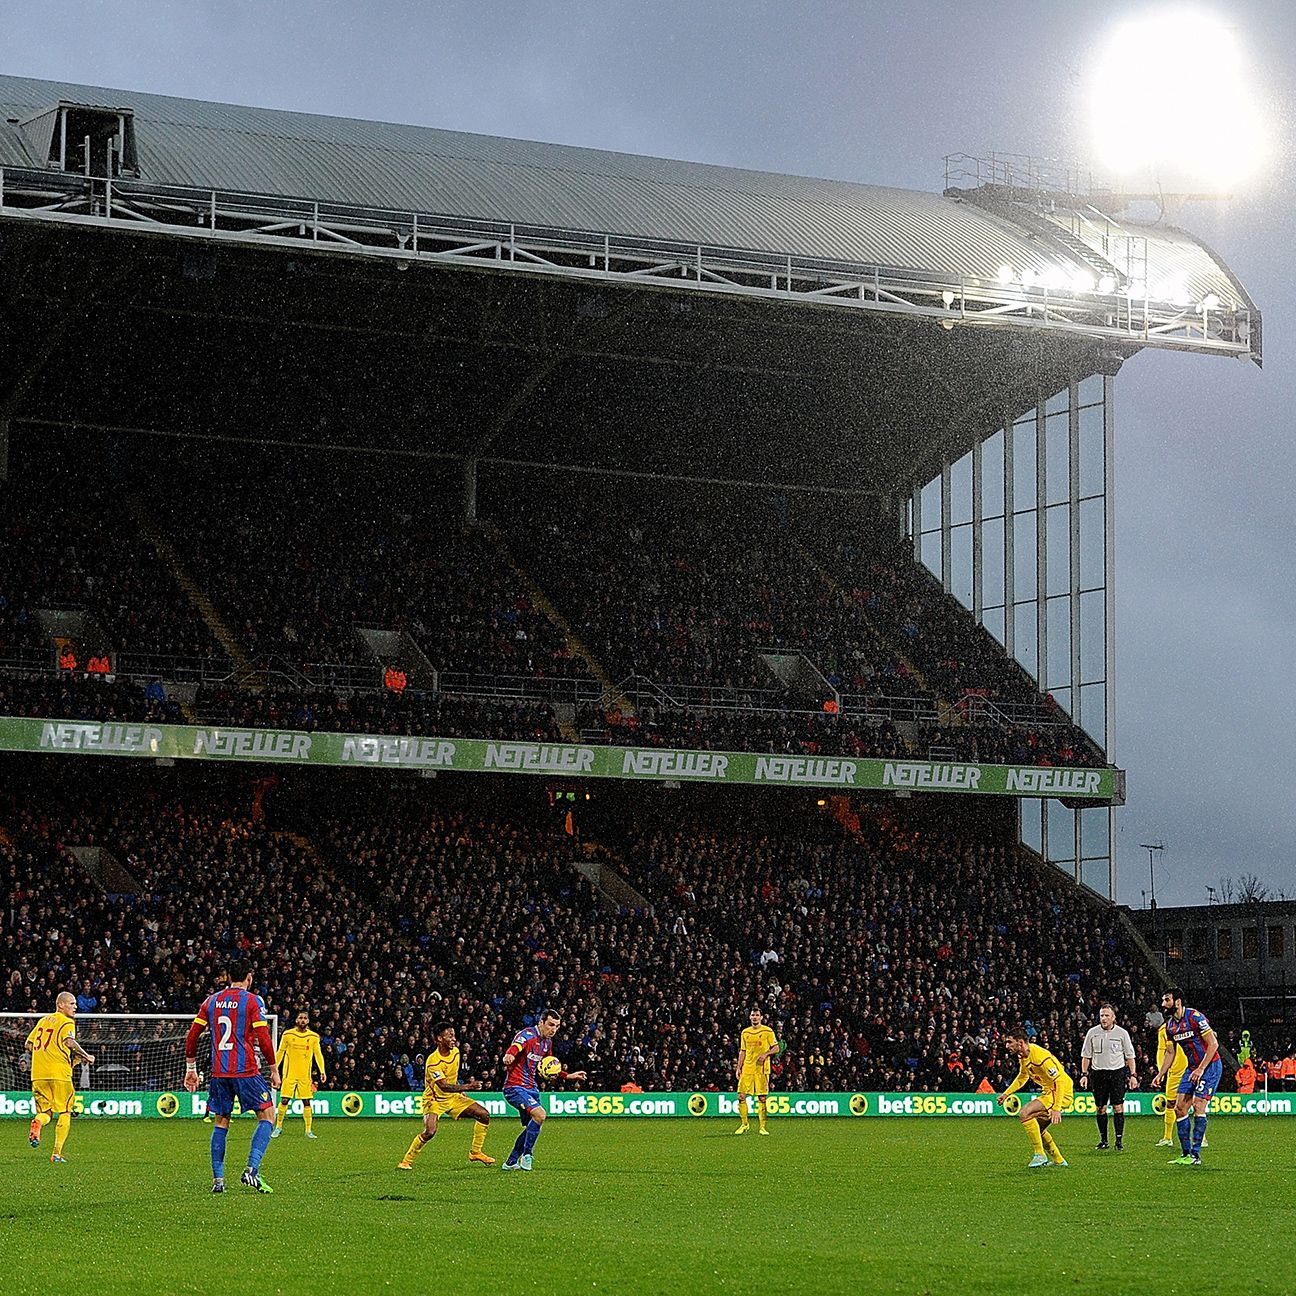 With a capacity of just over 25,000, Crystal Palace are seeking new ways to add revenue on match days at Selhurst Park.